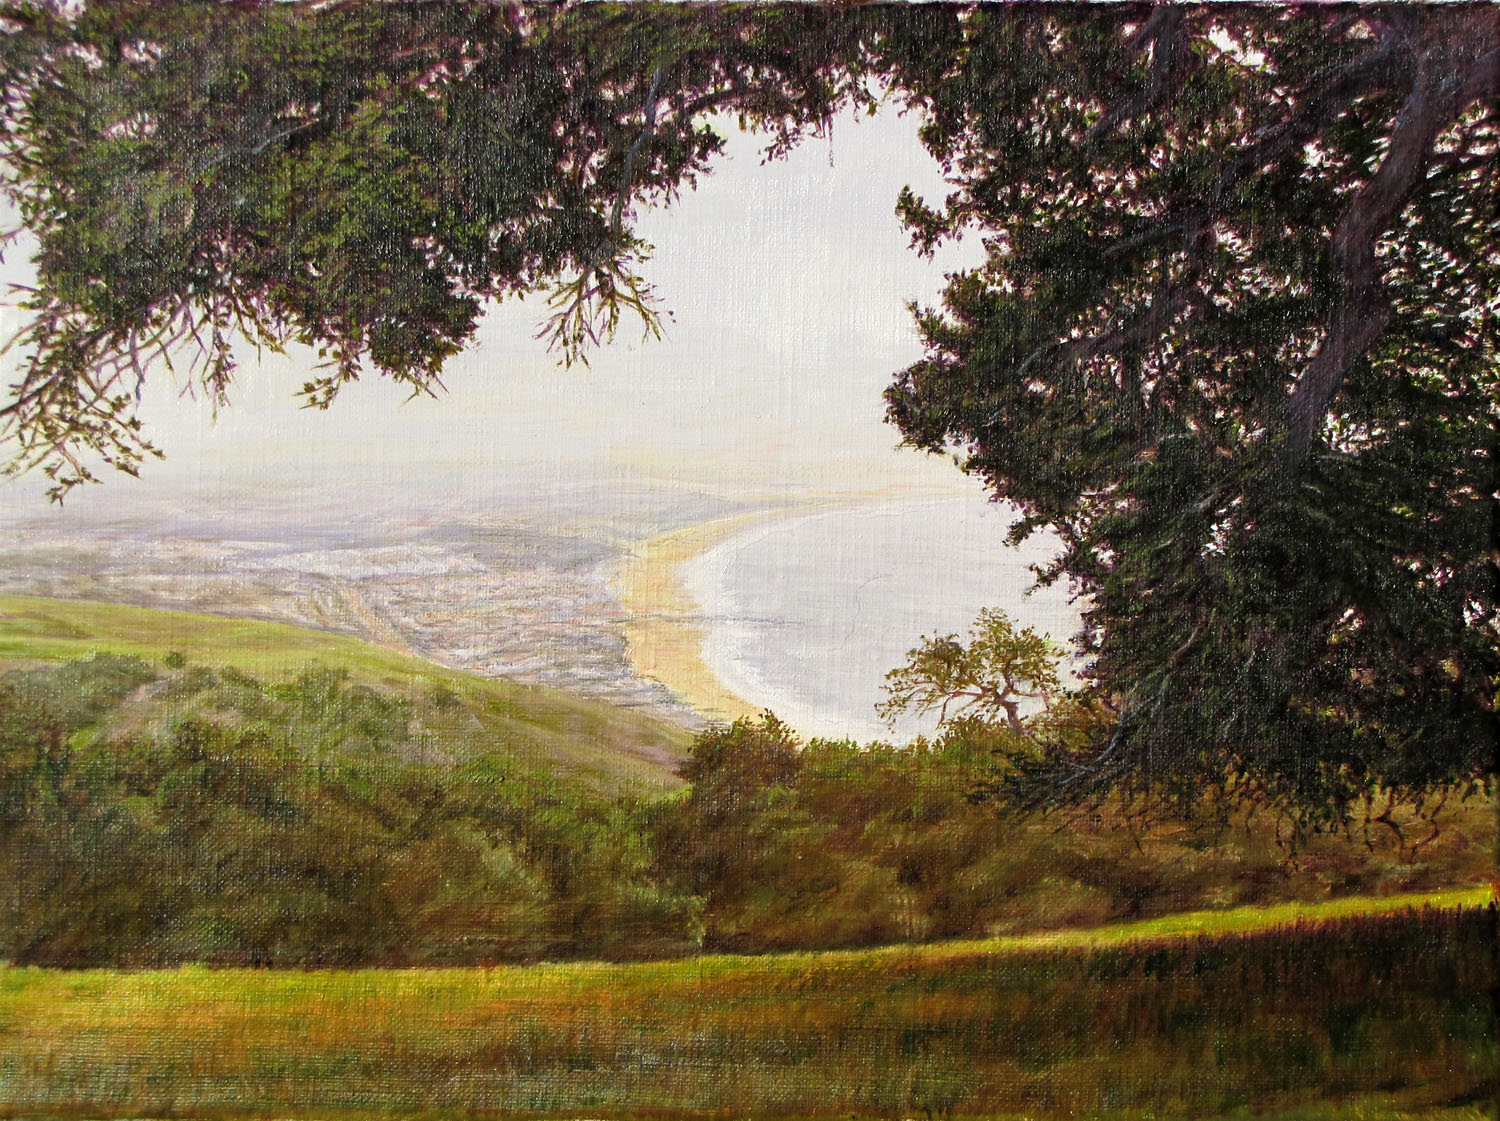 """""""Idyll Above Pismo""""  by Dennis Curry   A new work for the Pismo Preserve show."""